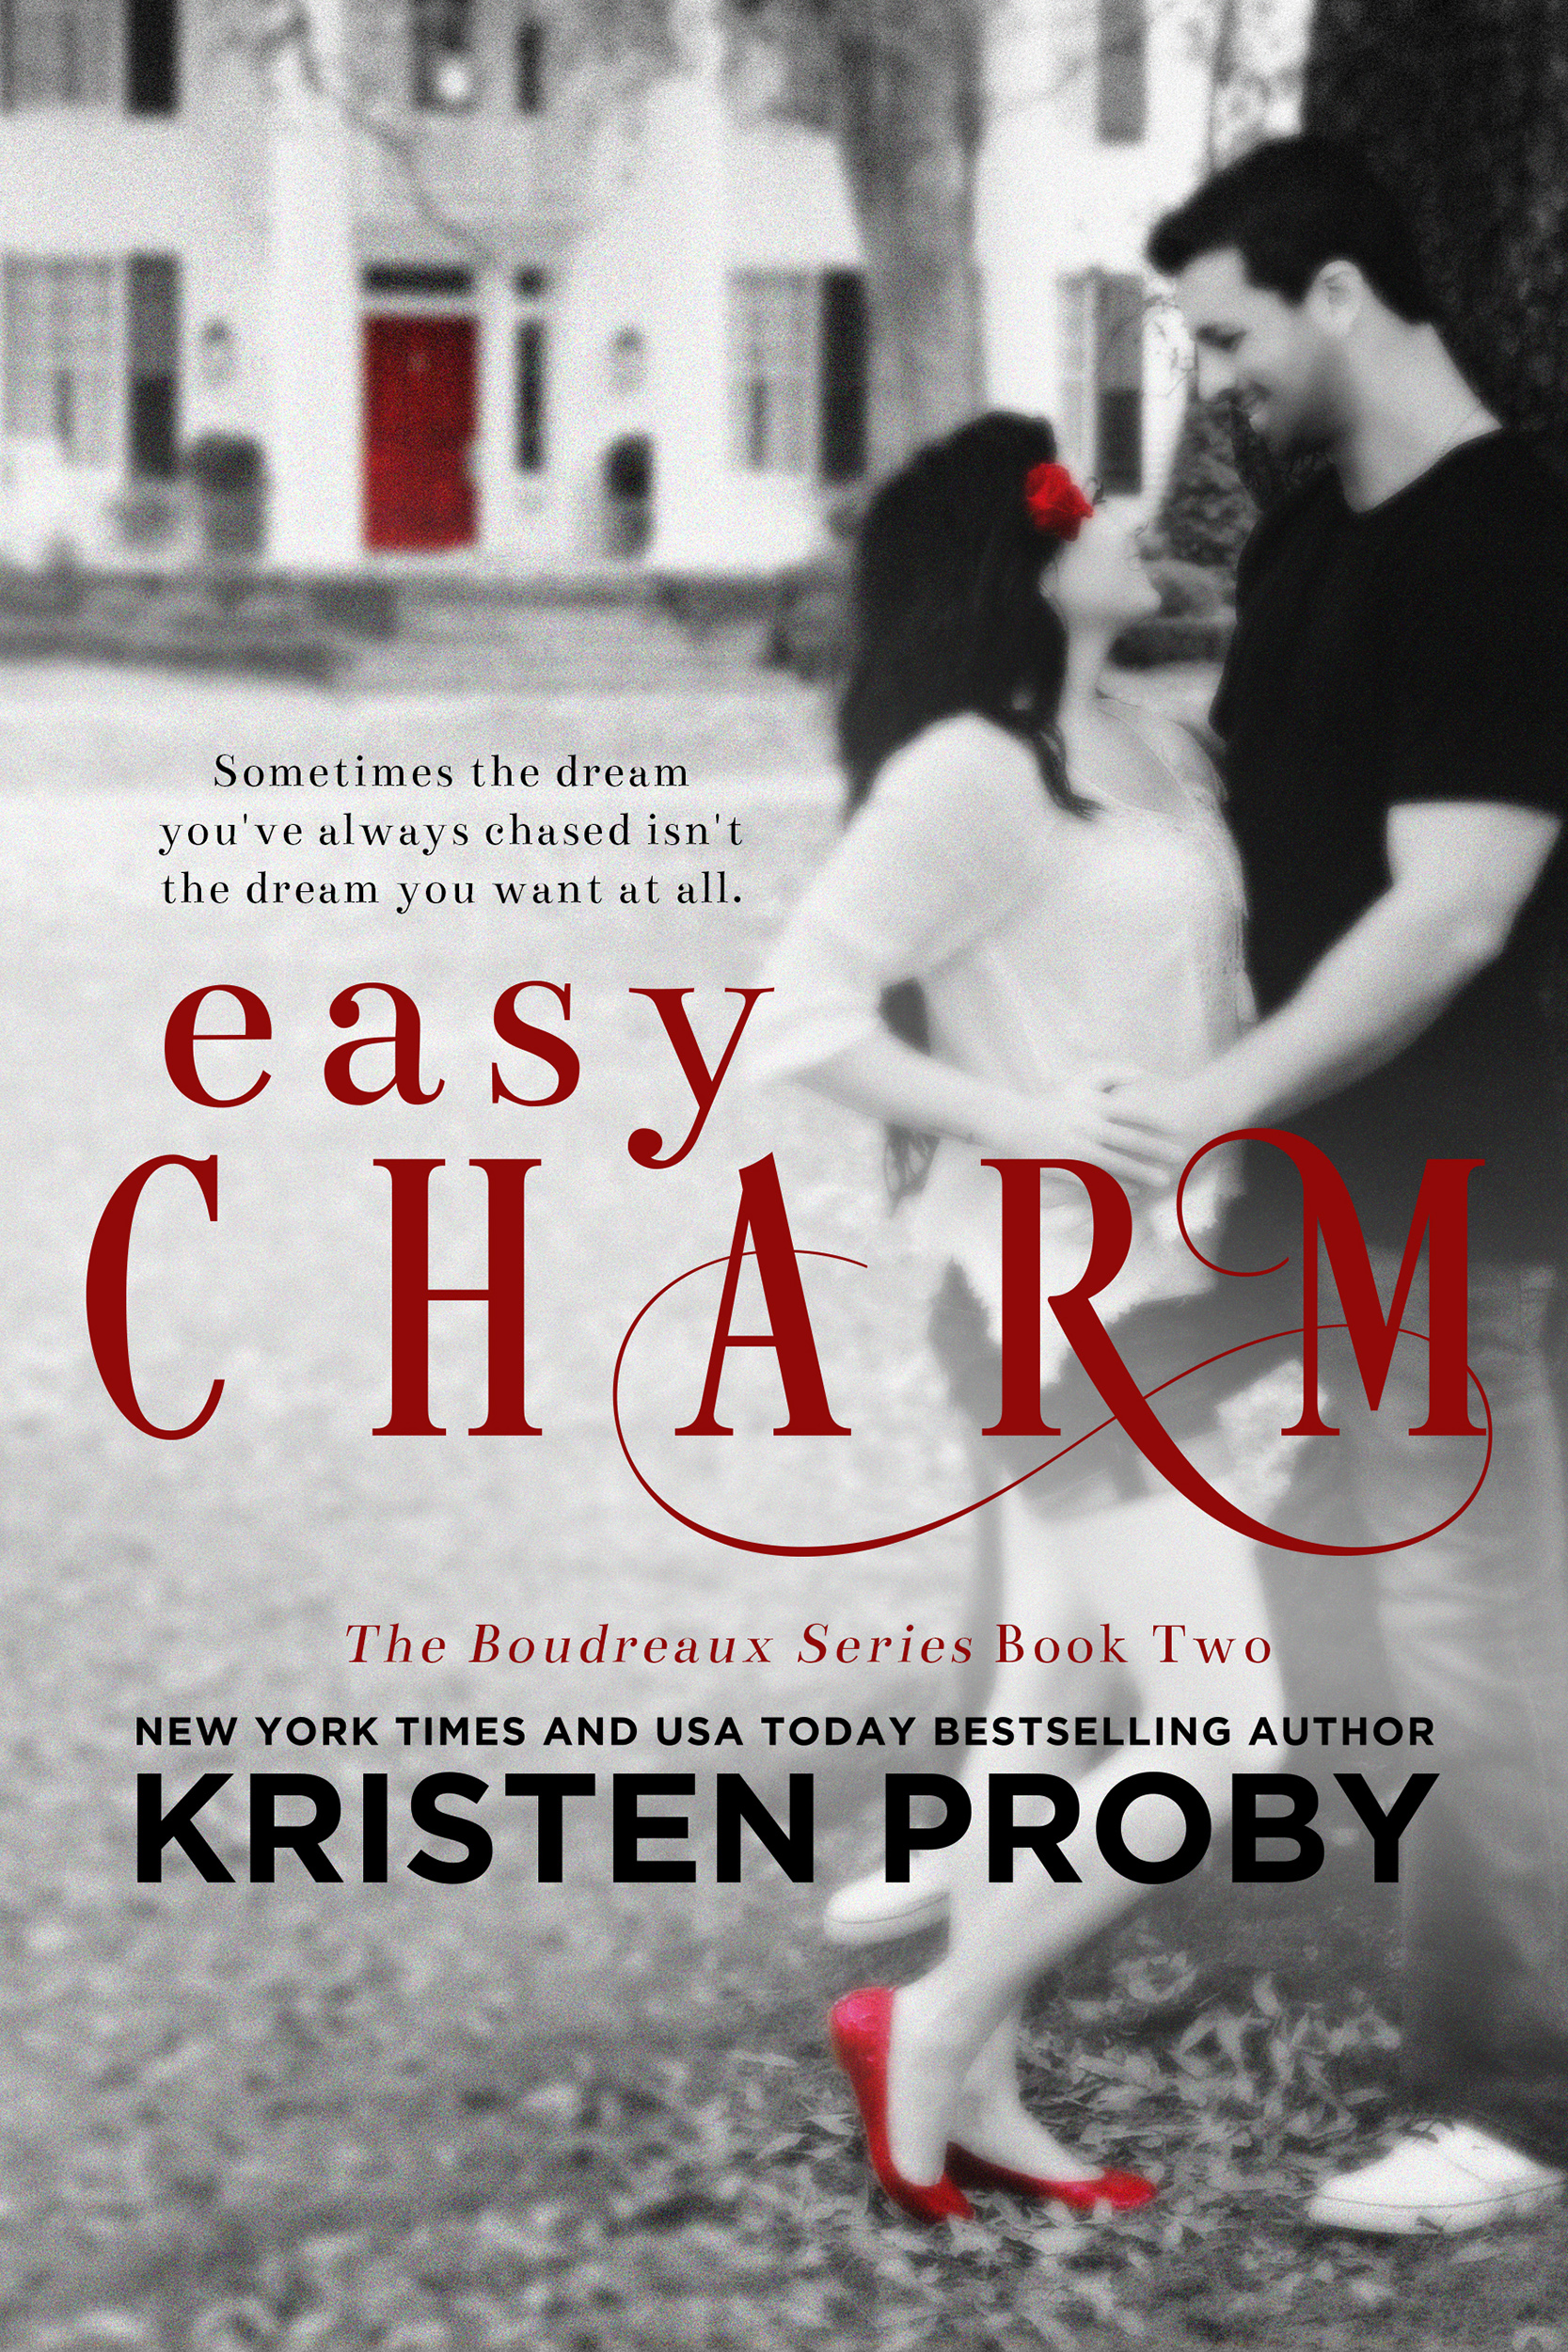 Review & Giveaway -EASY CHARM (The Boudreaux Series Book 2) by Kristen Proby